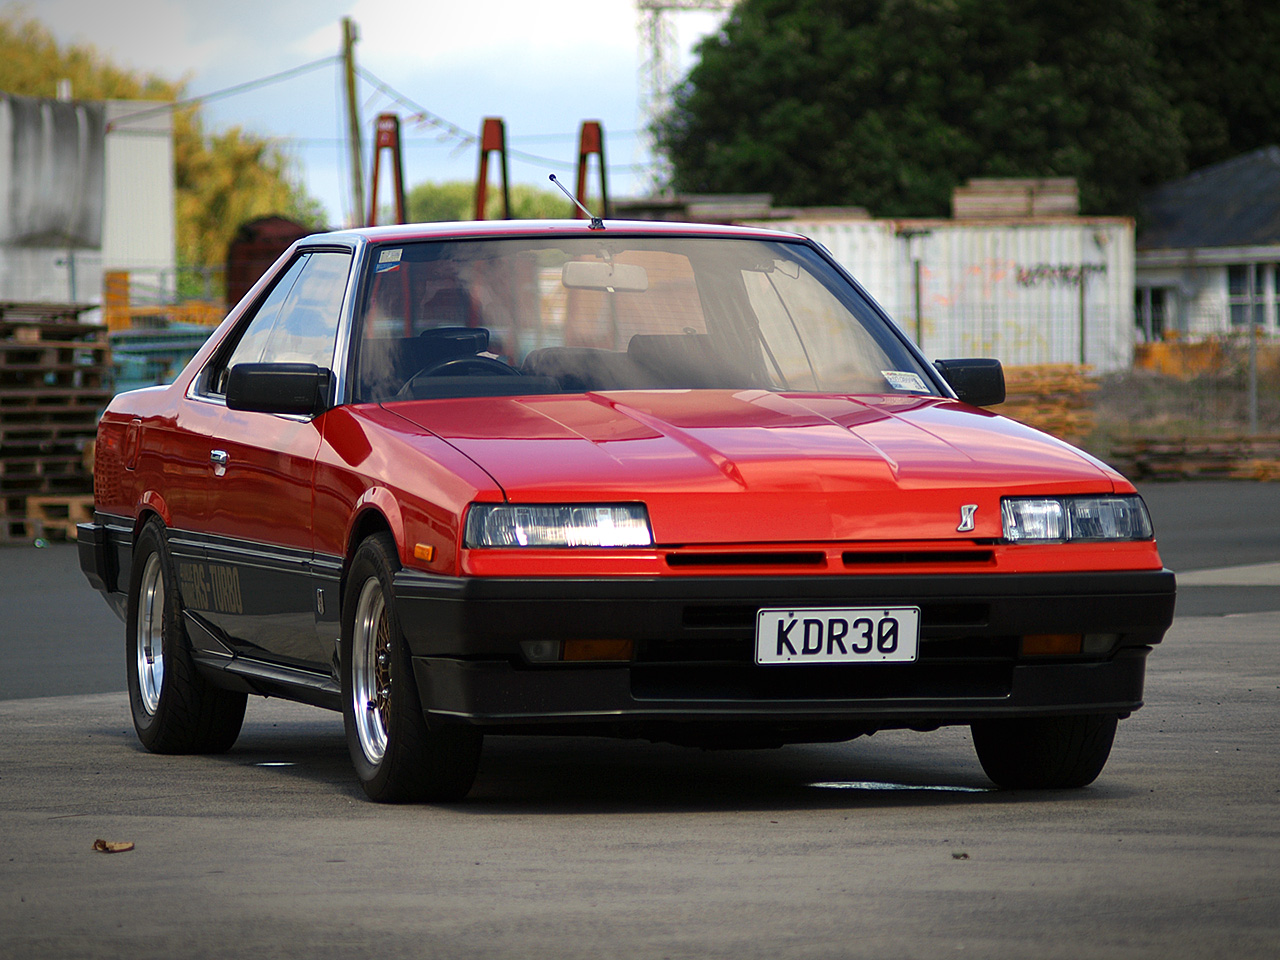 KDR30_Skyline_coupe_1983_facelift.jpg